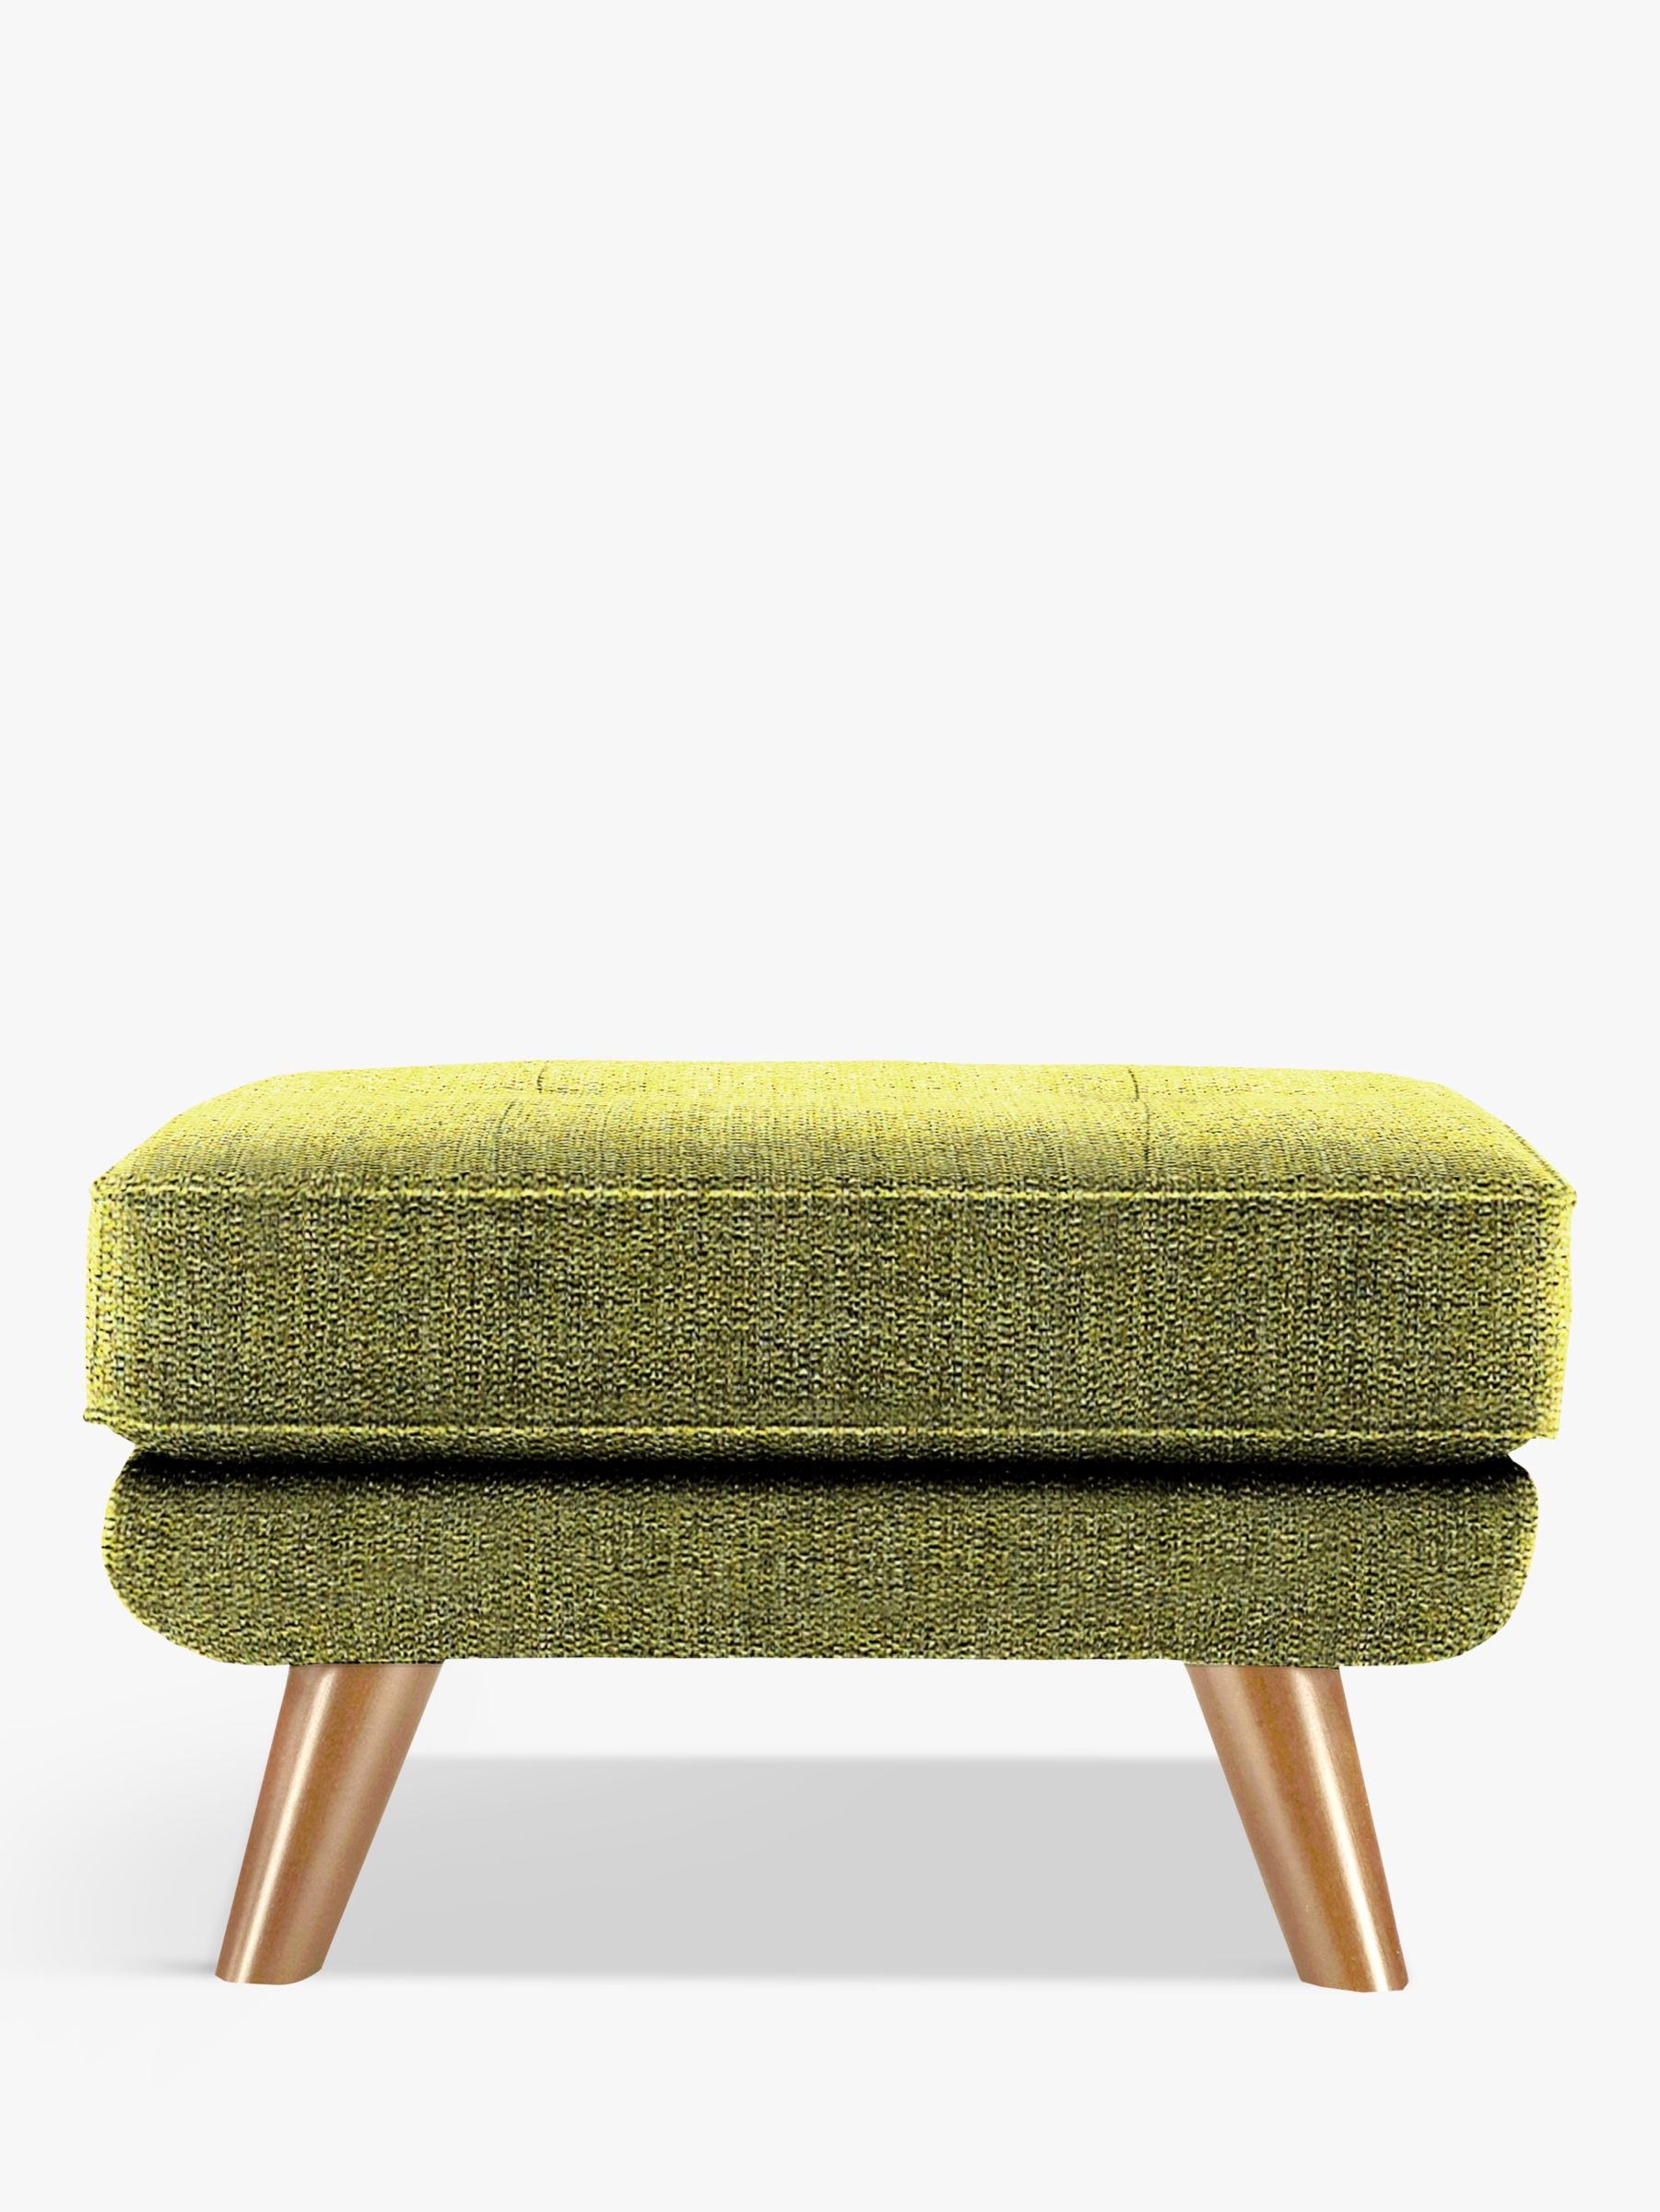 G Plan Vintage The Fifty Three Footstool, Marl Green